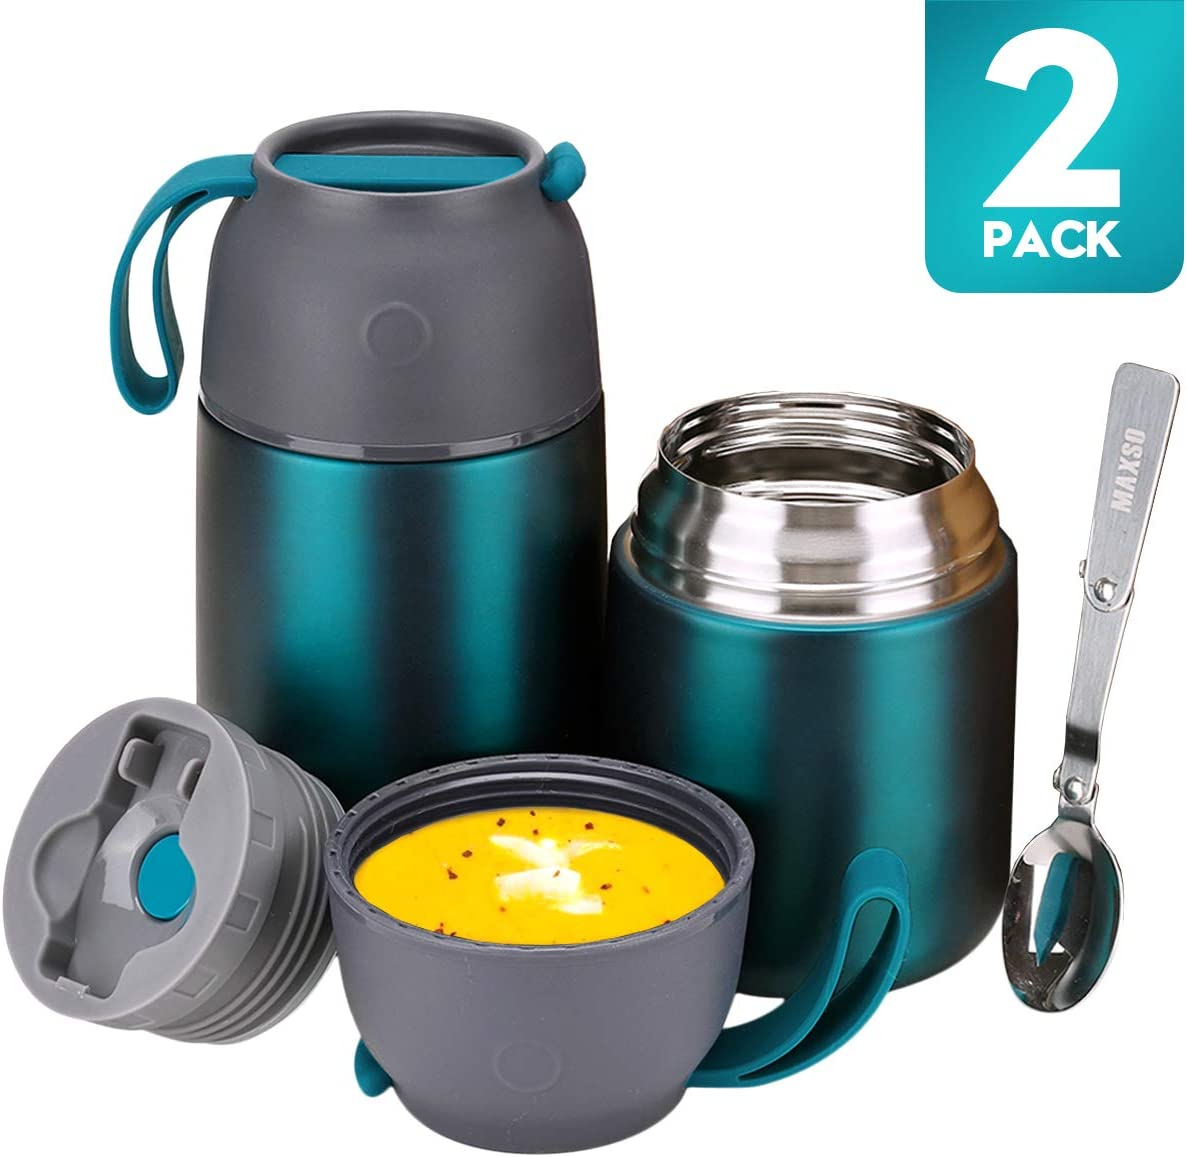 Thermos Food Jar for Hot & Cold Food for Kids Adult, 24 oz and 17 oz Set Soup Thermos Hot Food Containers for Lunch, 2 Pack Vacuum Insulated Food Jar with Spoon